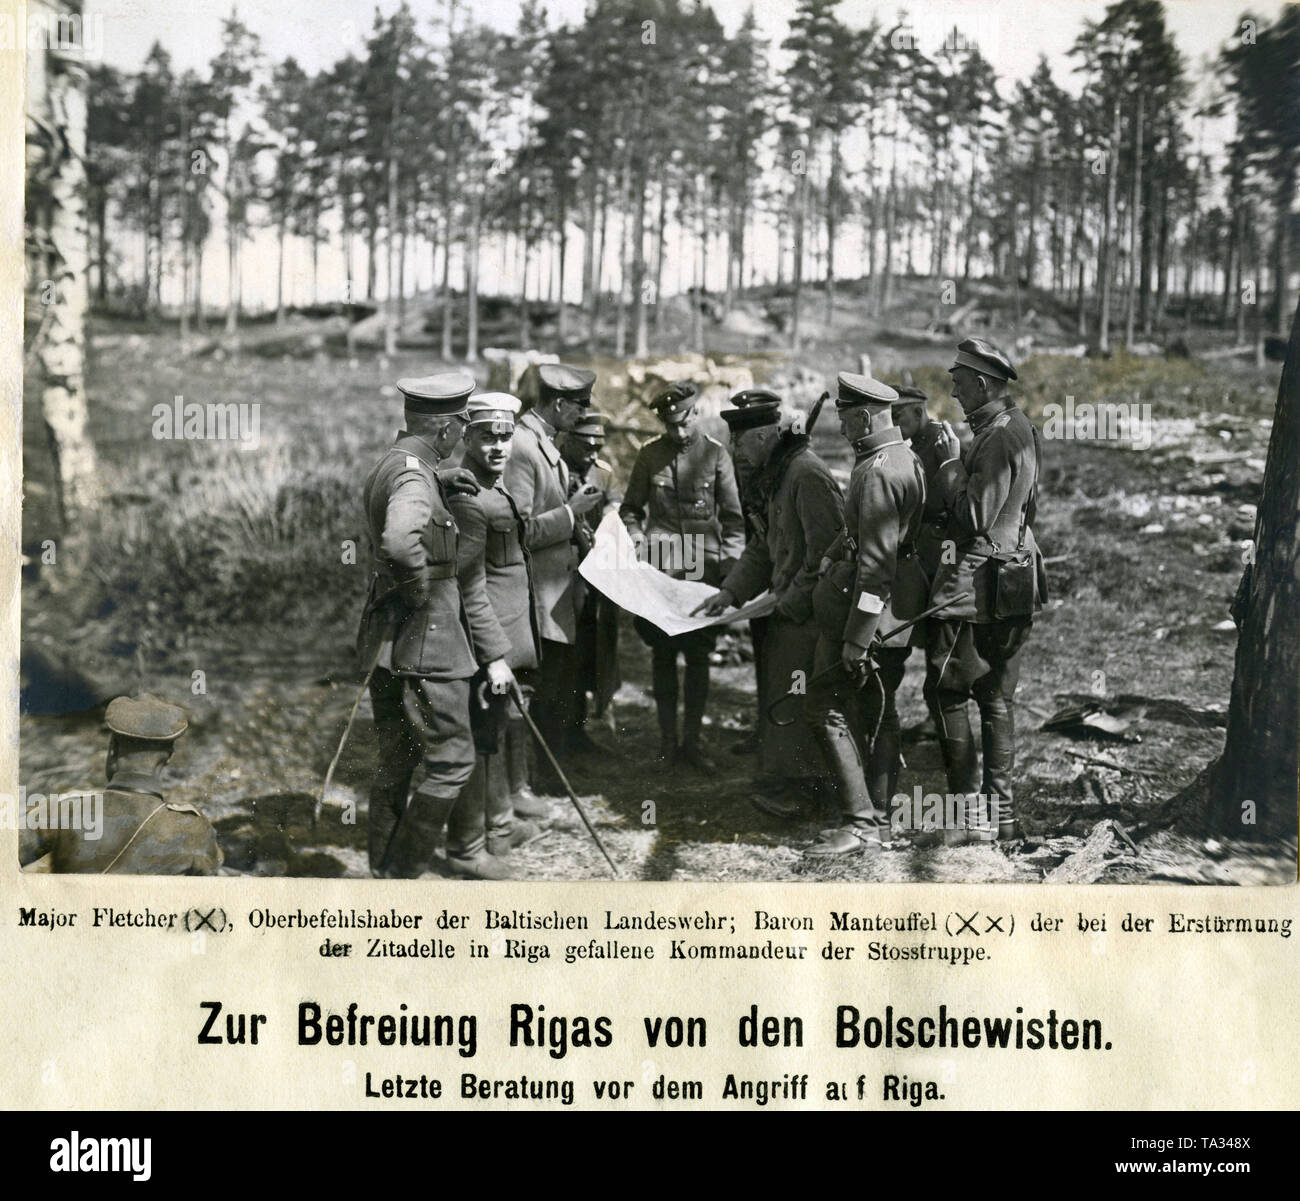 """The military leaders of the Free Corps """"Iron Division"""" and the Baltic Landeswehr consult one last time before the attack on Riga. Among them was the commander-in-chief, Major Alfred Fletcher and Hans Baron Manteuffel-Szoege, the commander of the battalion that fell during the storming of the Citadel in Riga. Stock Photo"""